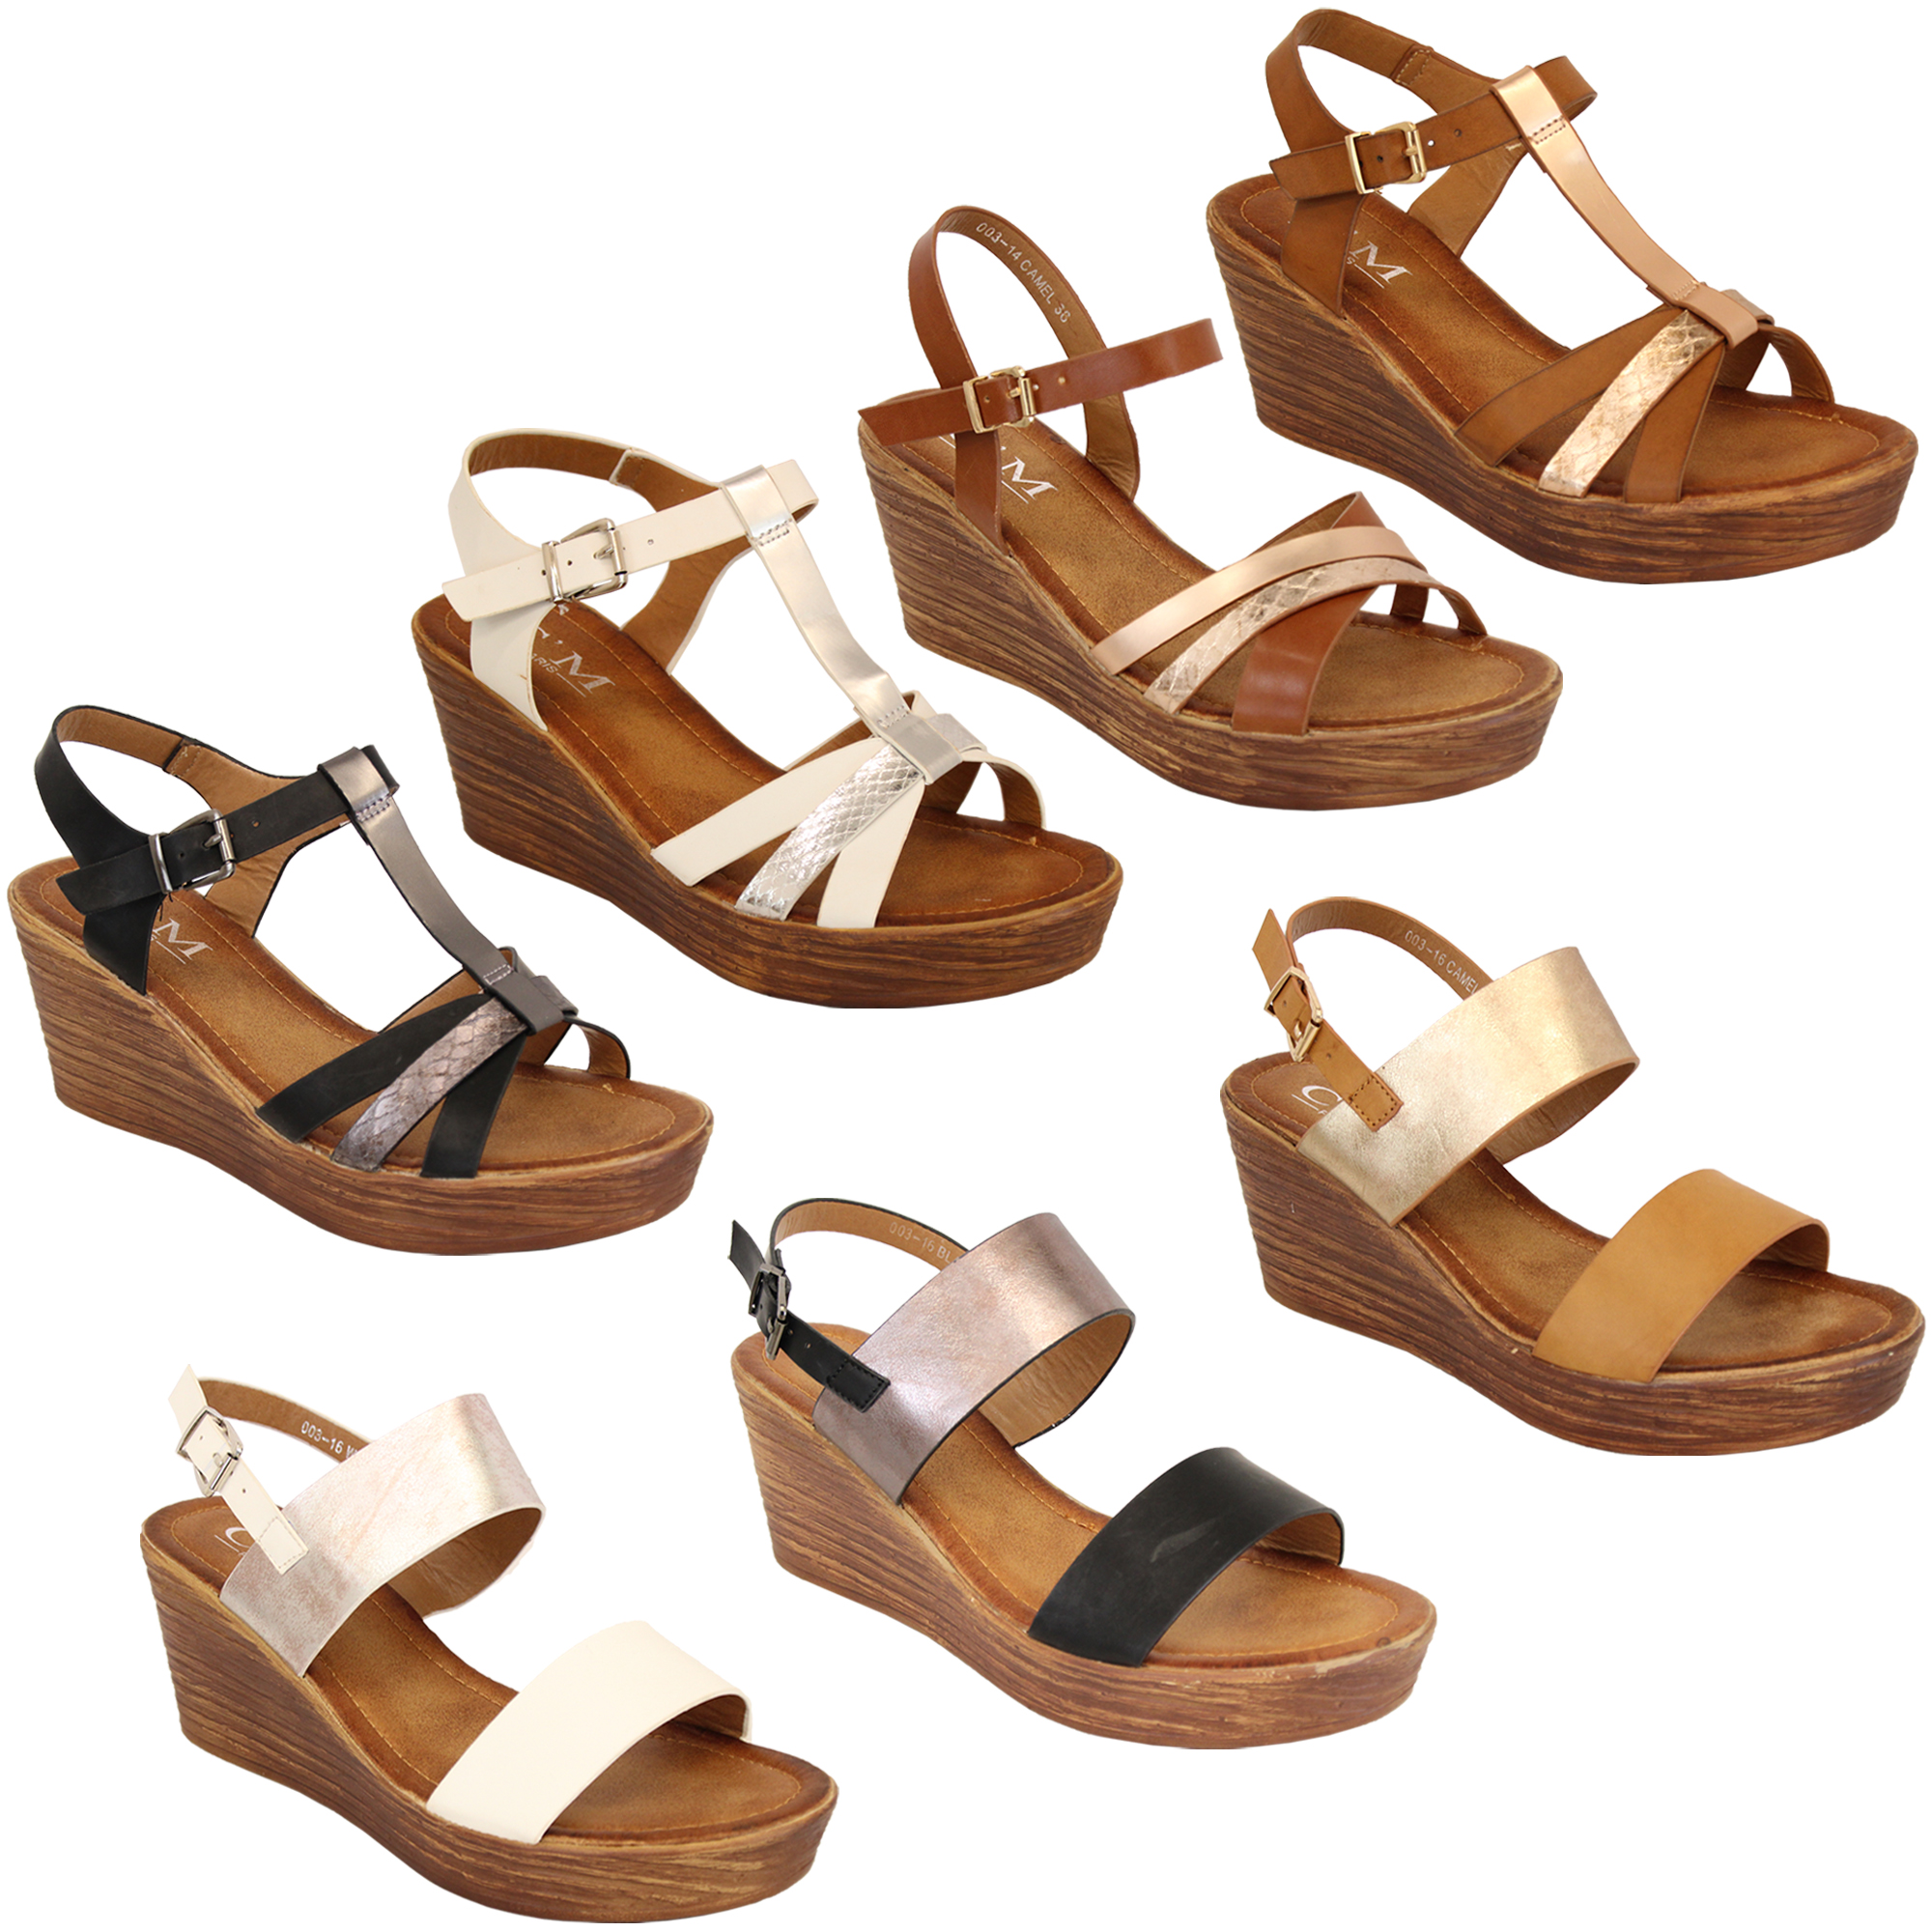 Ladies-Wedge-Sandals-Womens-Strappy-Open-Toe-Shoes-Party-Fashion-Buckle-Summer thumbnail 5